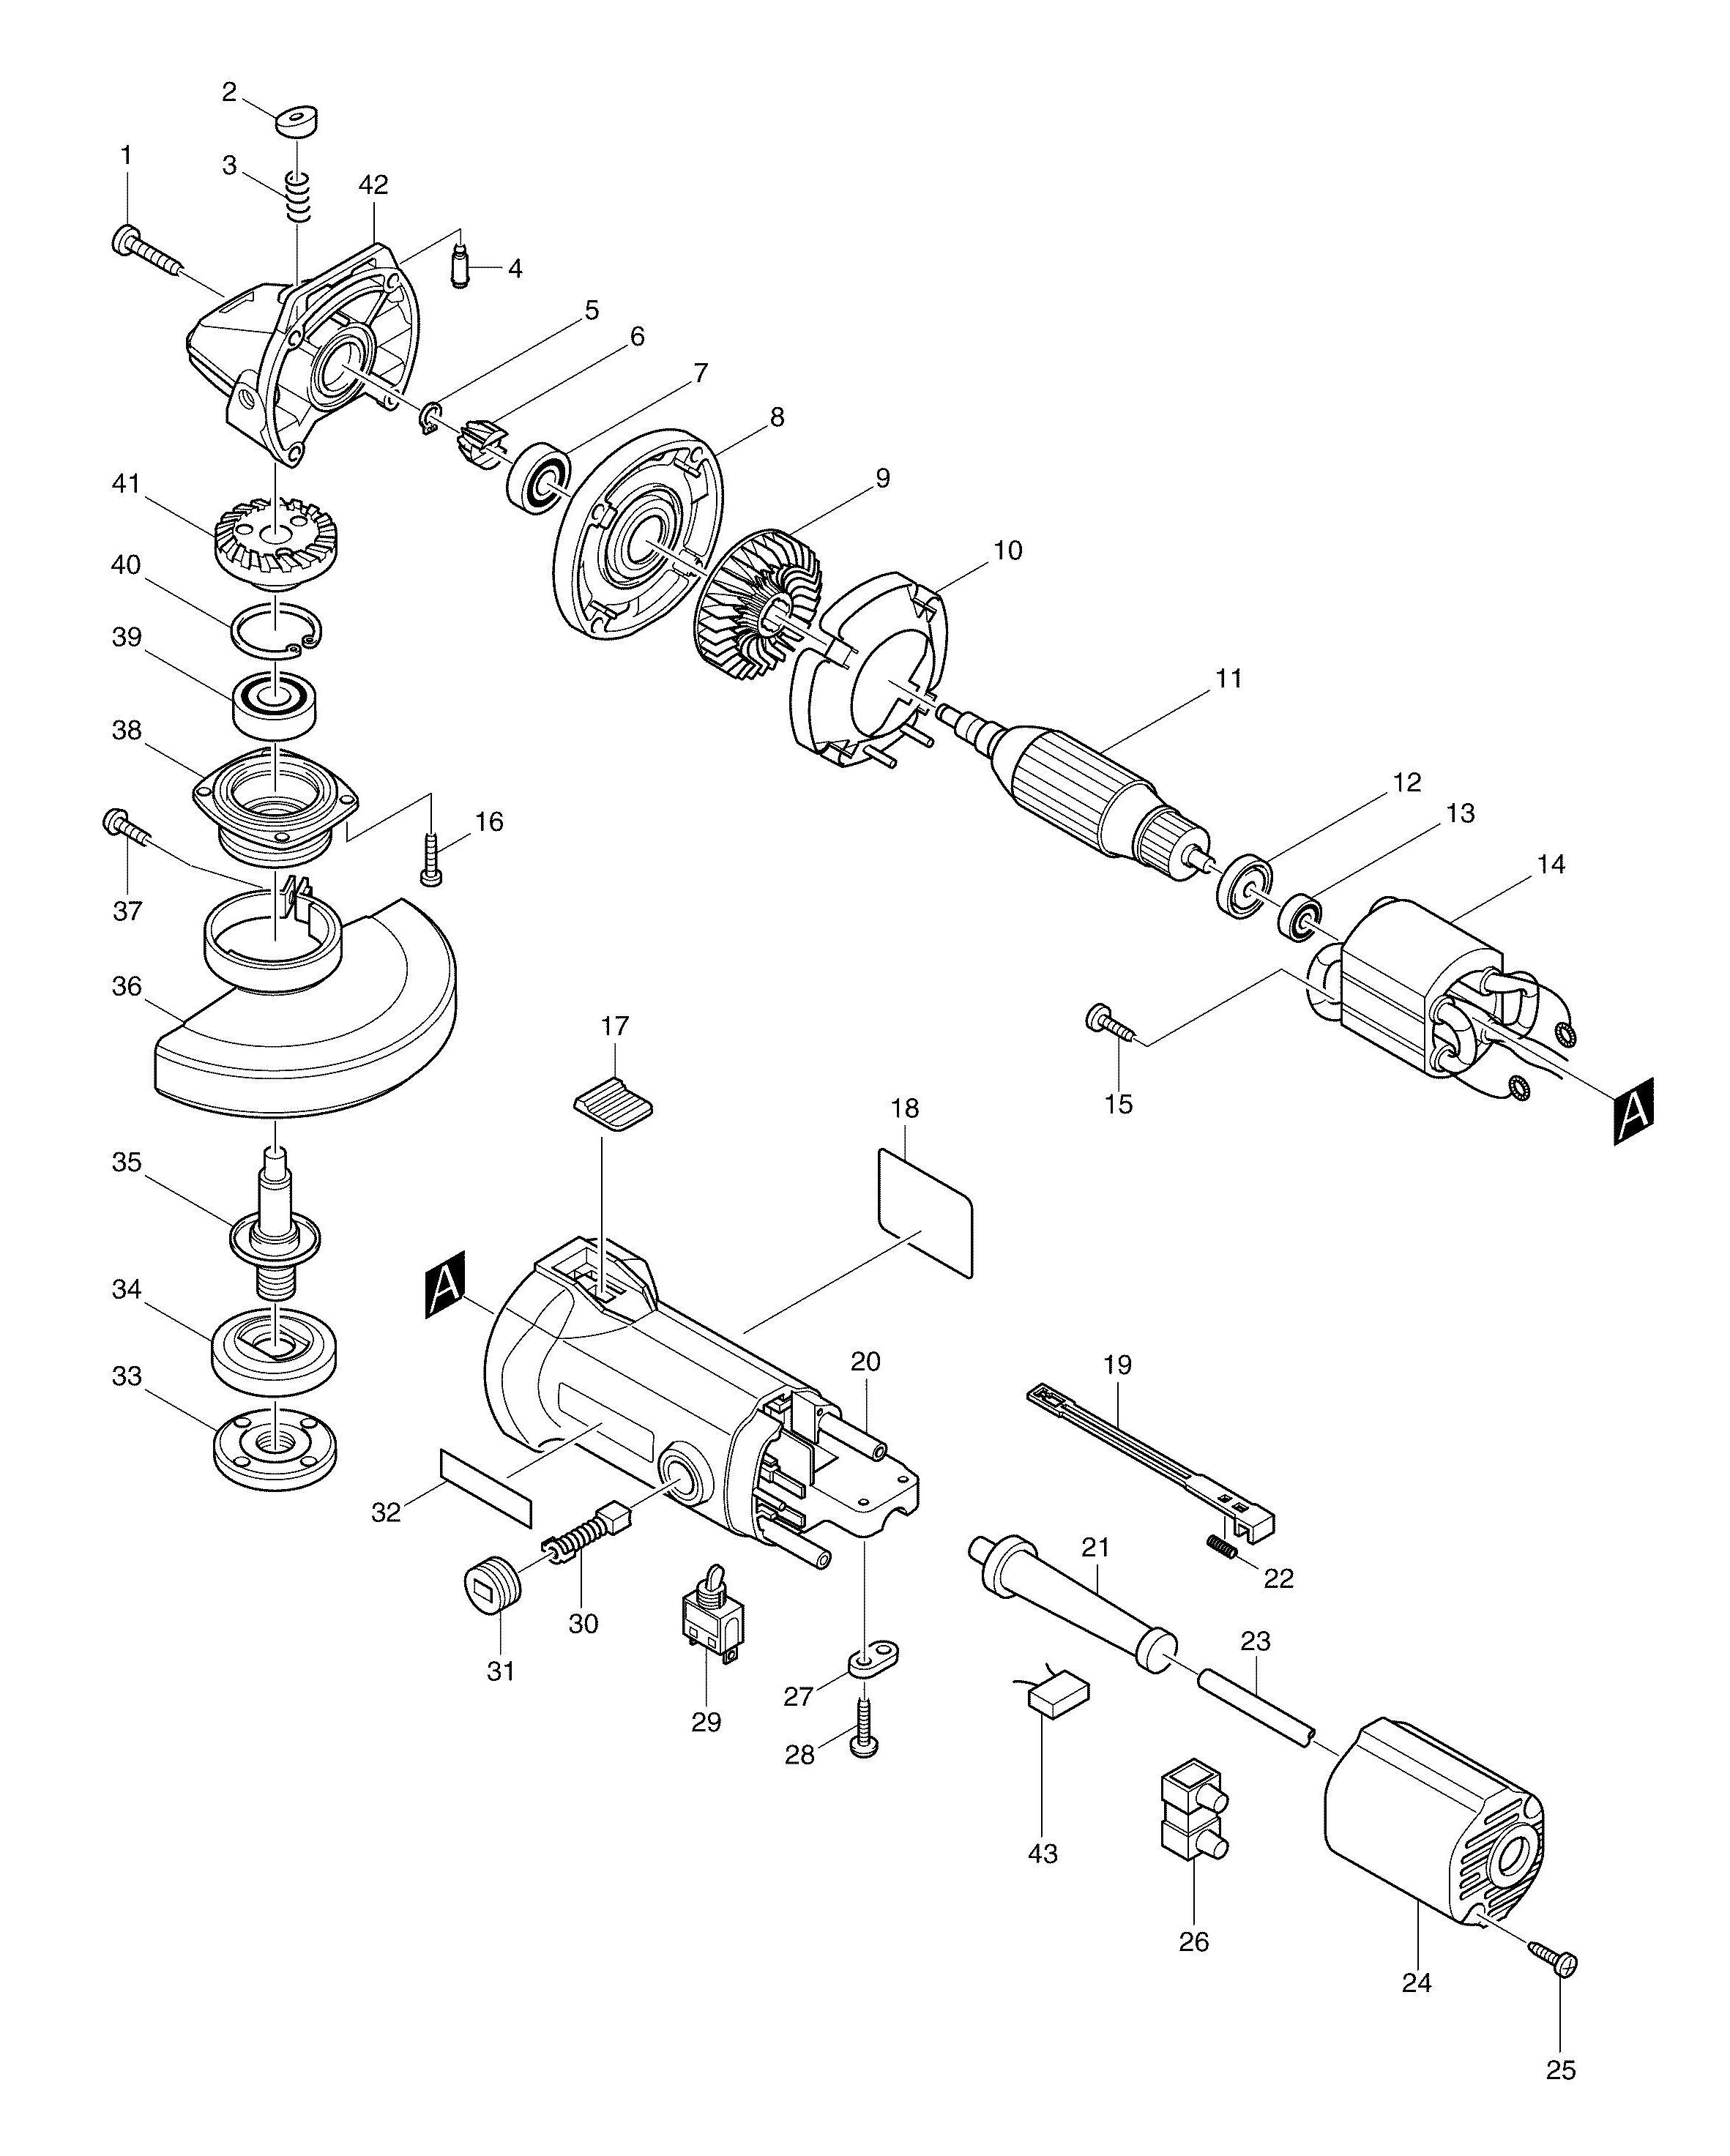 Spares for Makita 9527nb Angle Grinder SPARE_9527NB from Power Tool on grinder pumps diagram, grinder motor, grinder parts, grinder accessories,